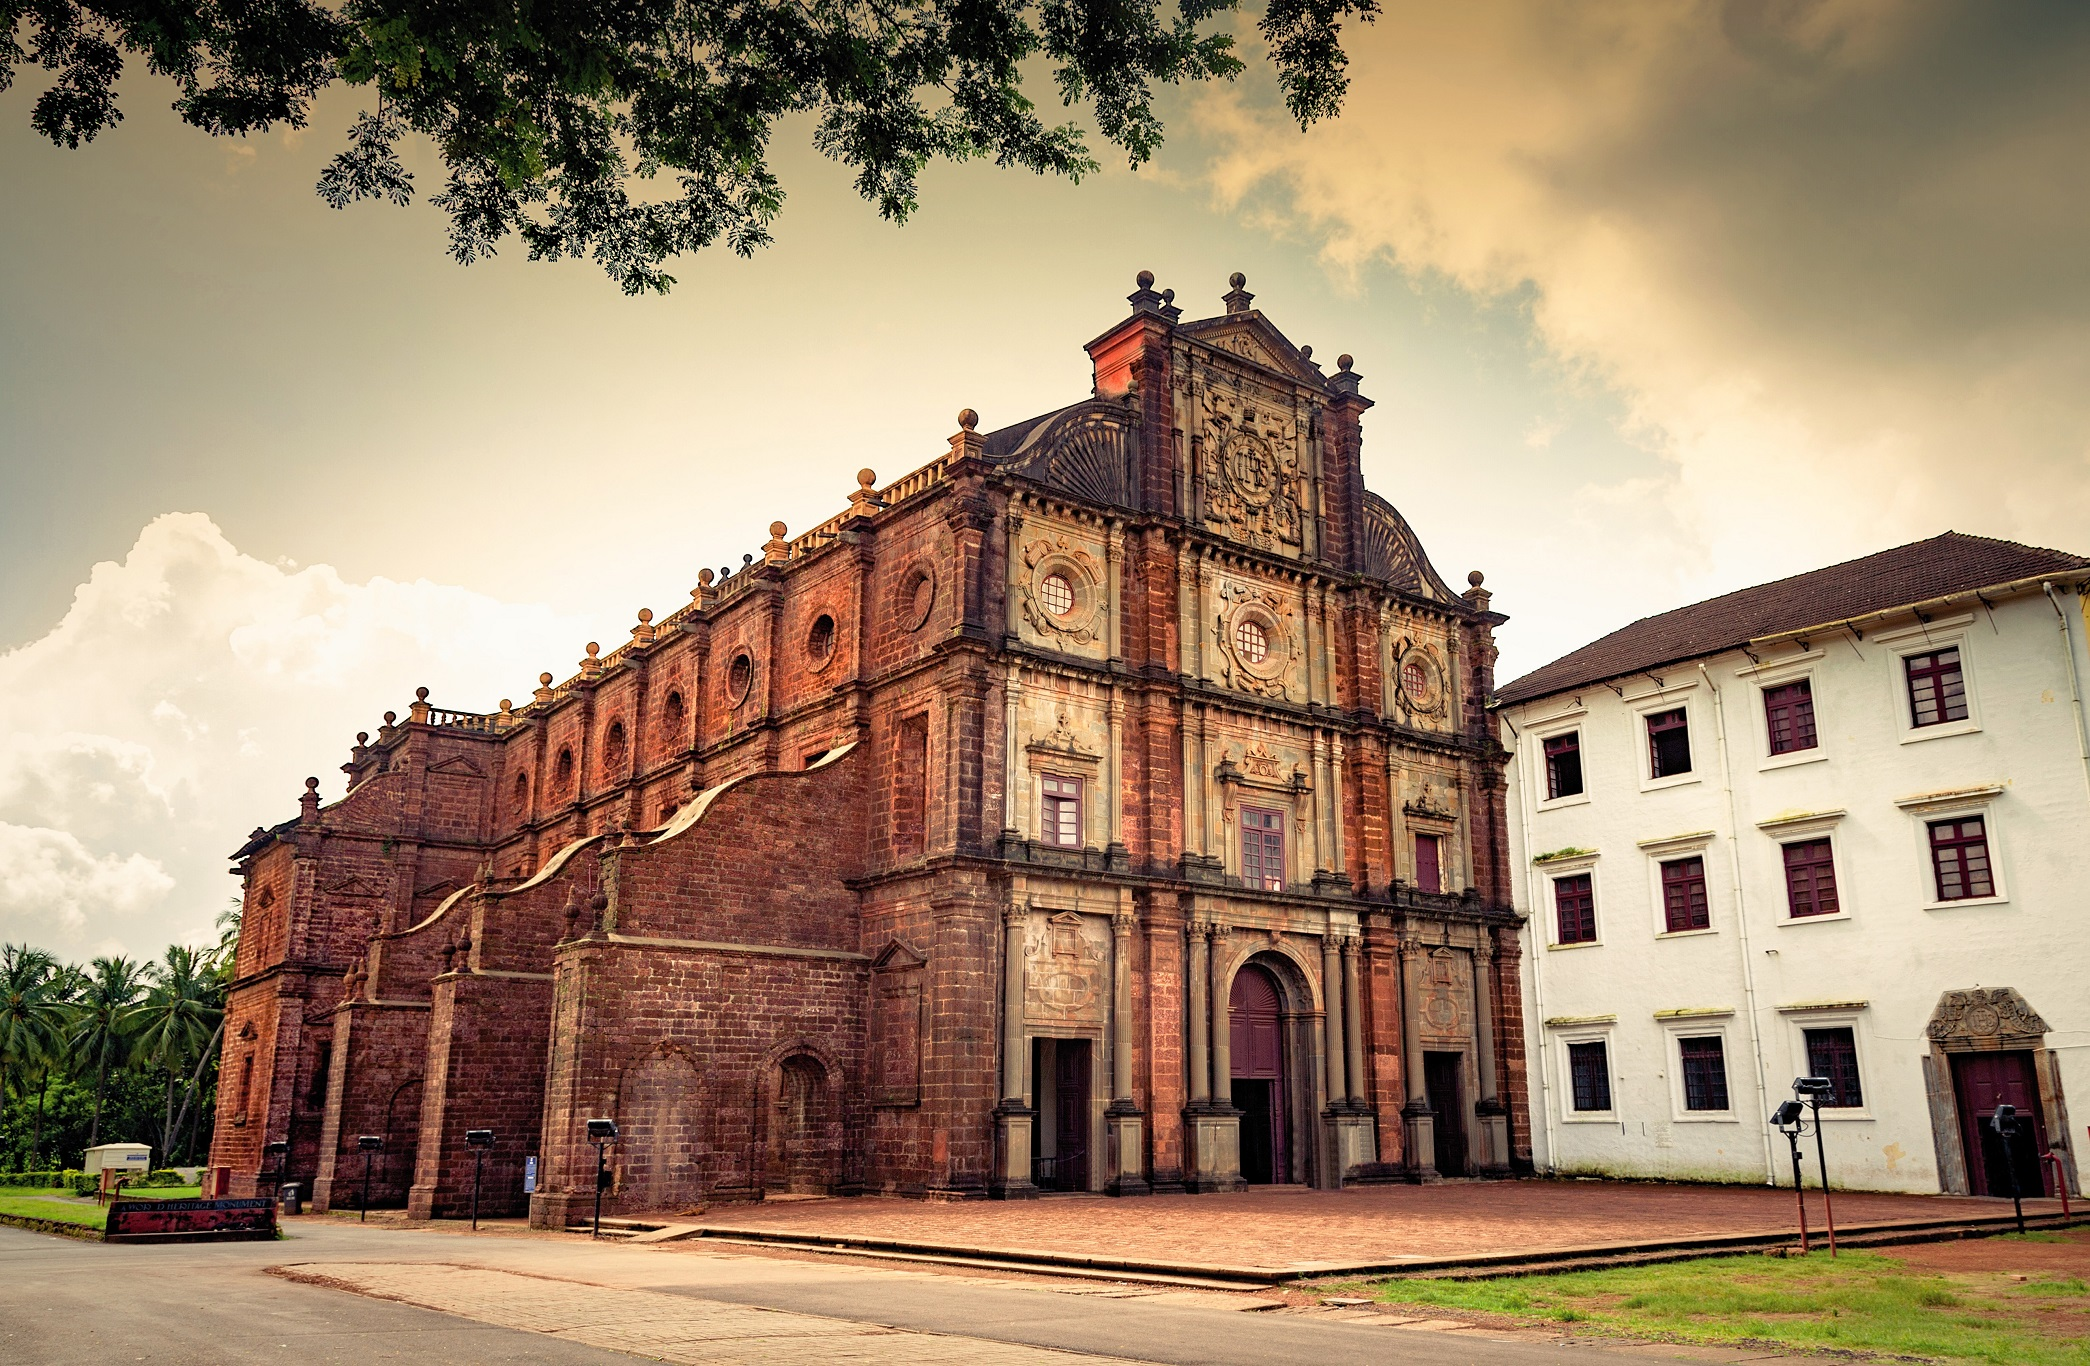 Ancient Basilica of Bom Jesus church at Goa, India